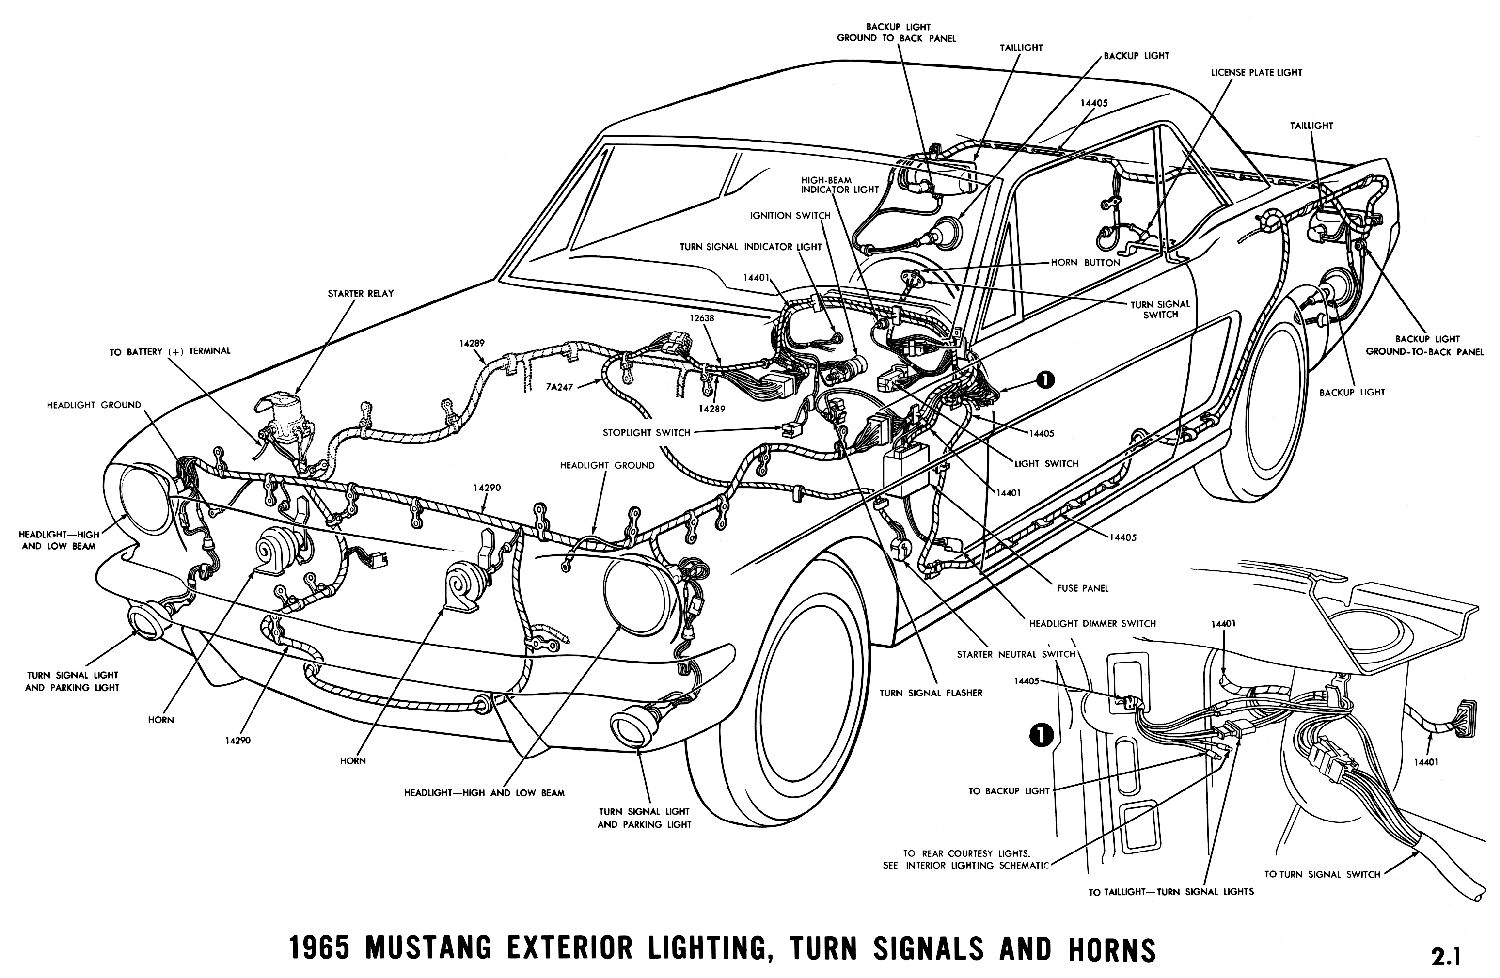 1965 Mustang Neutral Safety Switch Wiring Diagram Manual Of 1964 Plymouth Diagrams Average Joe Restoration